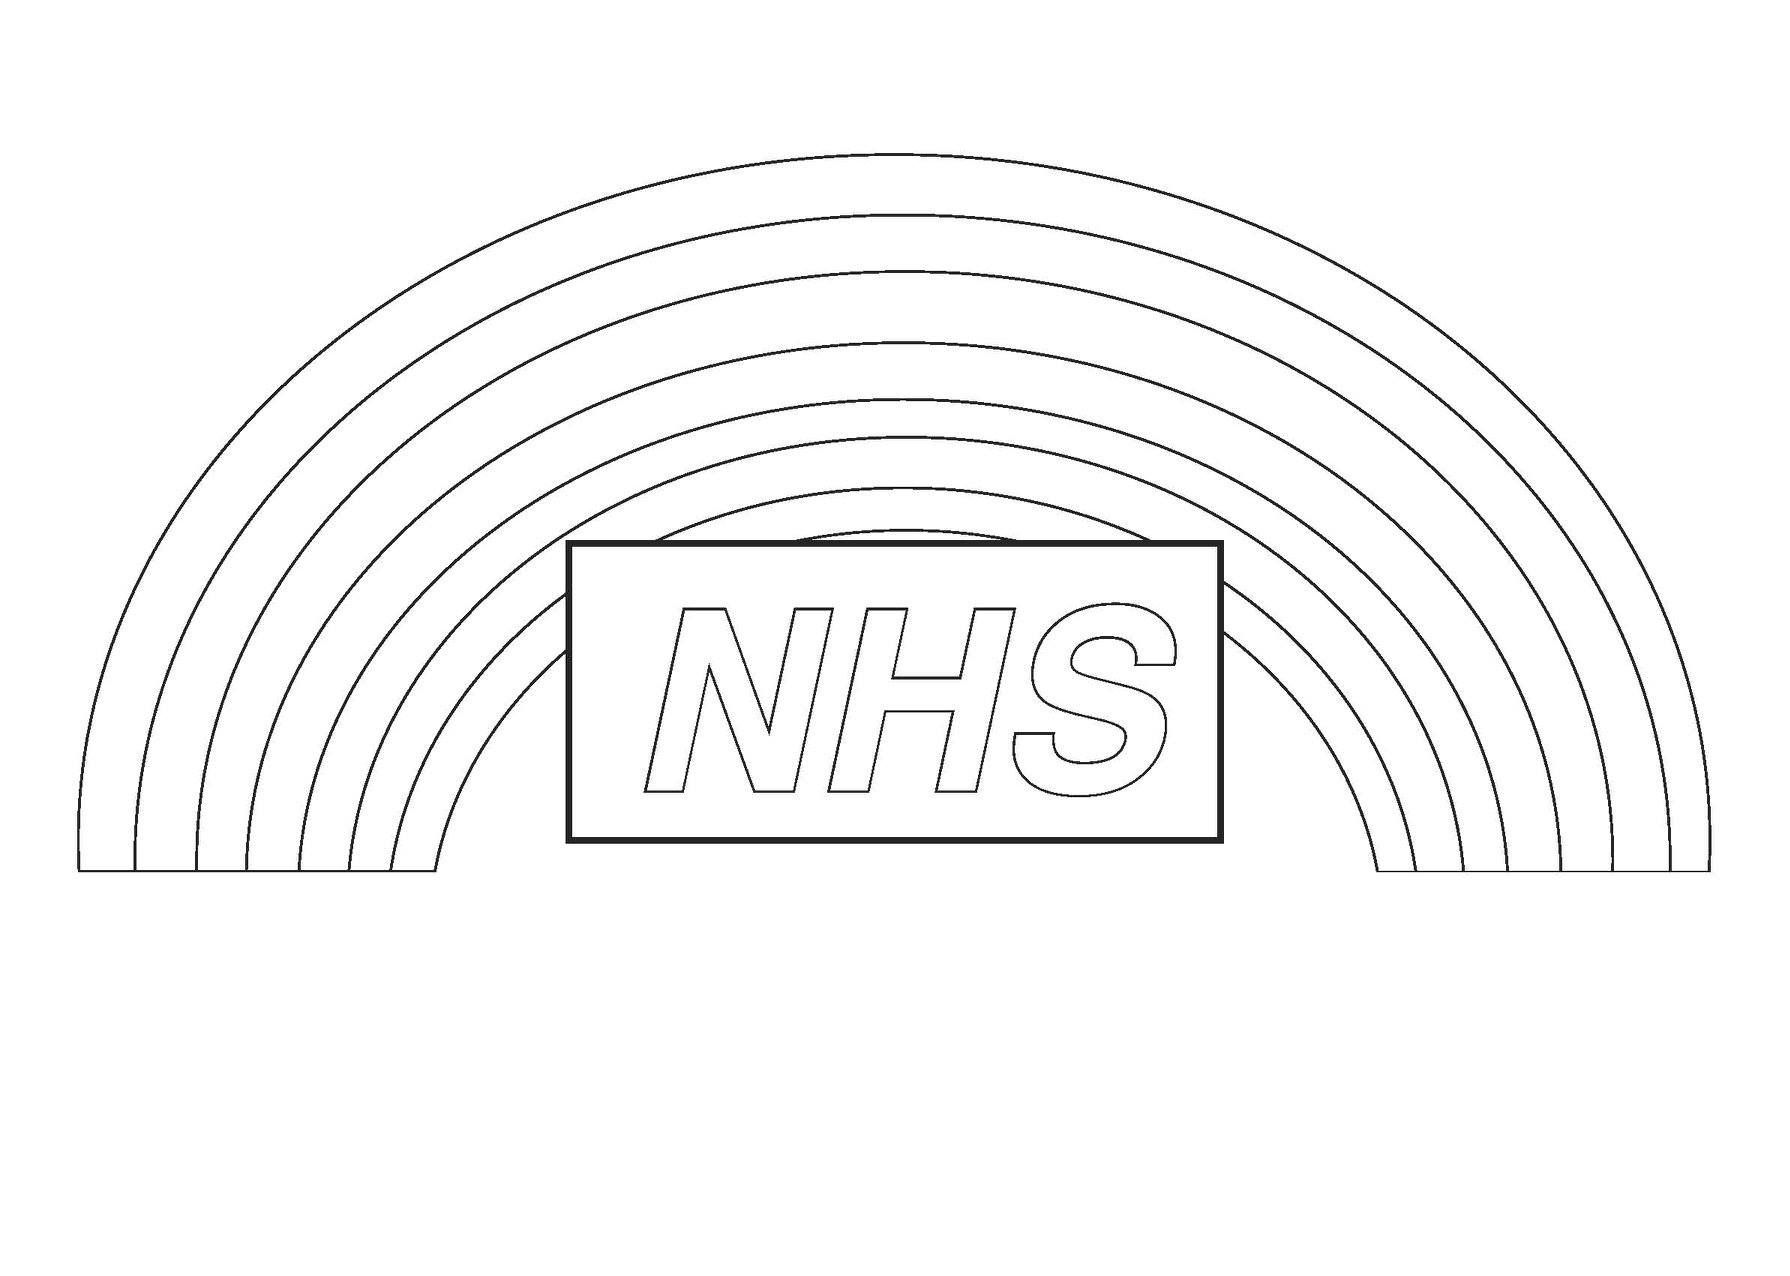 Nhs Colouring Page Coloring Pages Colouring Pages Mindfulness Colouring